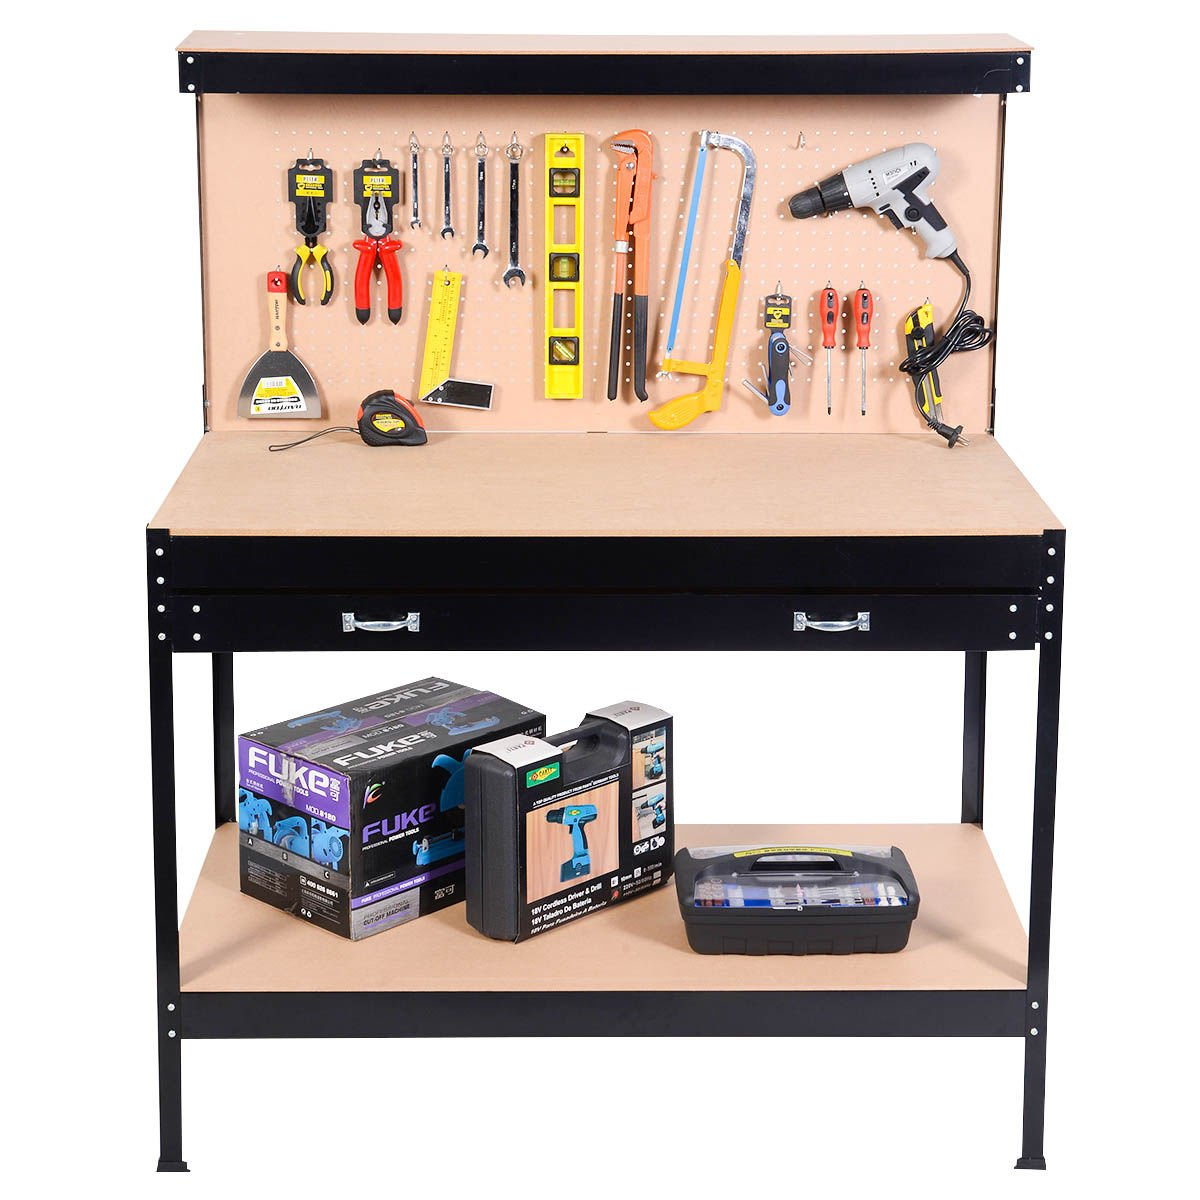 Work Bench Tool Storage Steel Frame Tool Workshop Table W/ Drawer and Peg Boar by allgoodsdelight365 (Image #2)